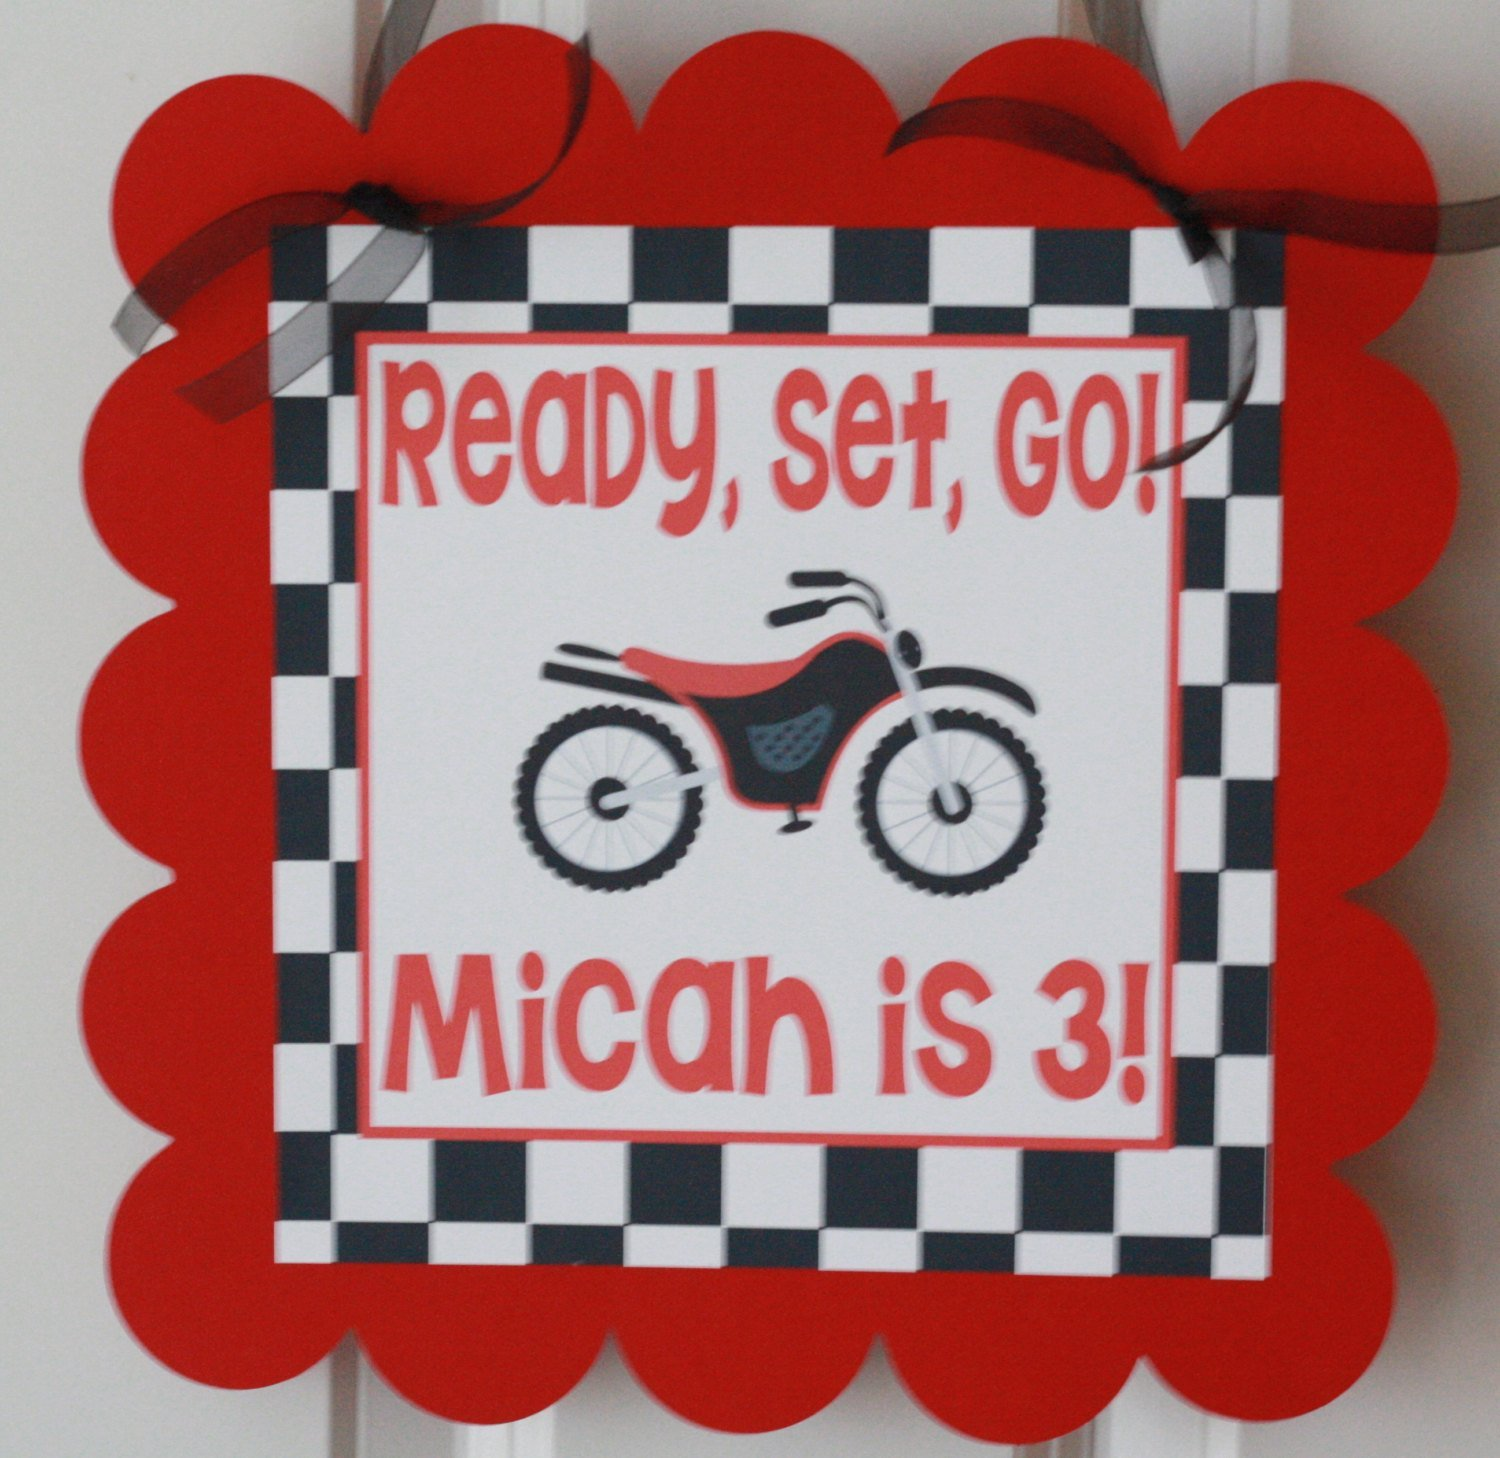 Amazon.com: 12 - Red Black Checkered Flag Motorcycle Motocross Dirt ...